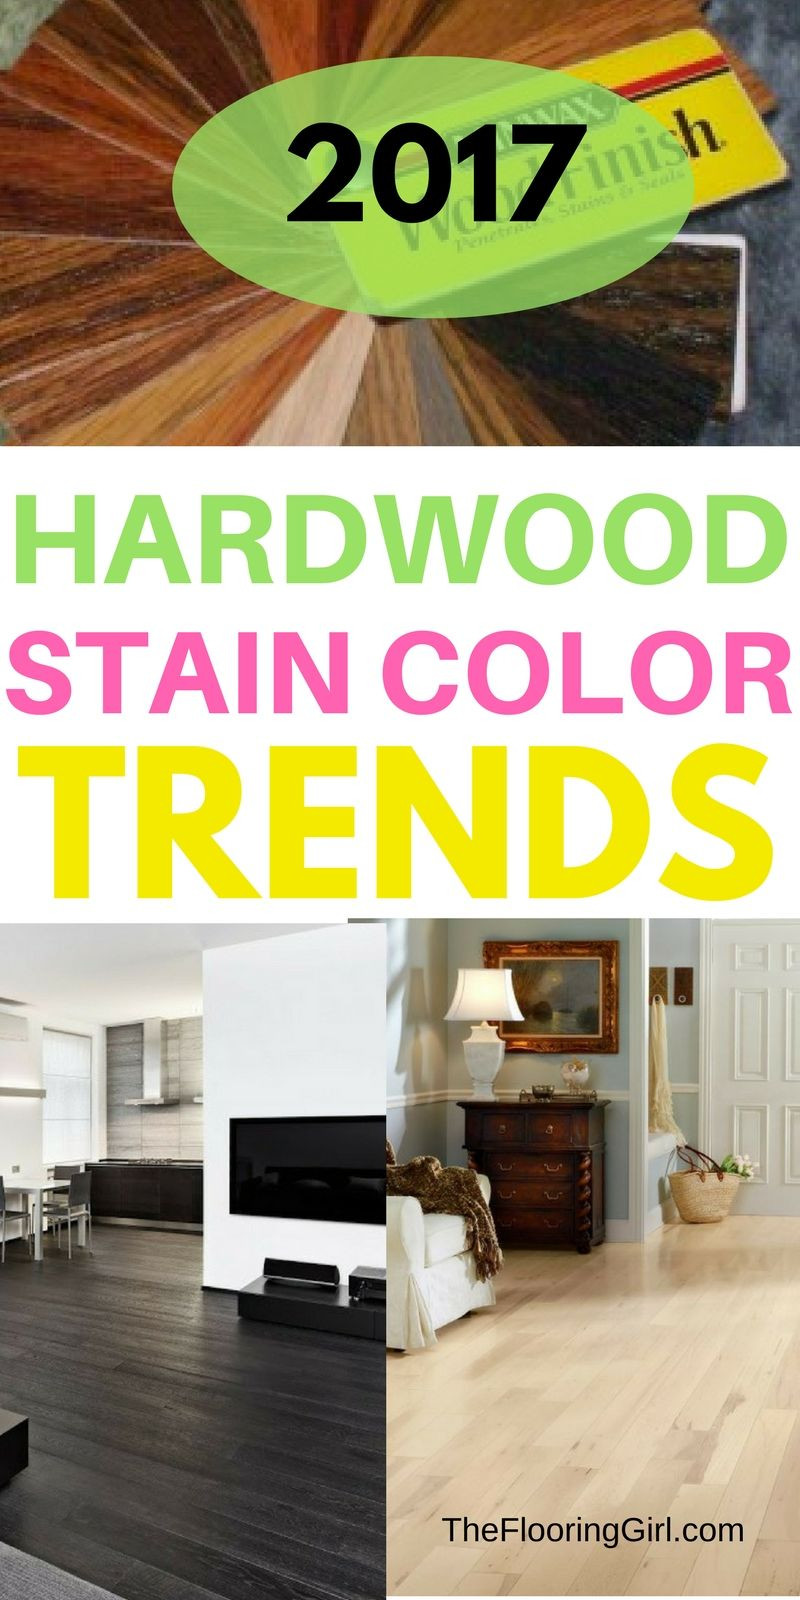 hardwood flooring manufacturing process of hardwood flooring stain color trends 2018 more from the flooring within hardwood flooring stain color trends for 2017 hardwood colors that are in style theflooringgirl com